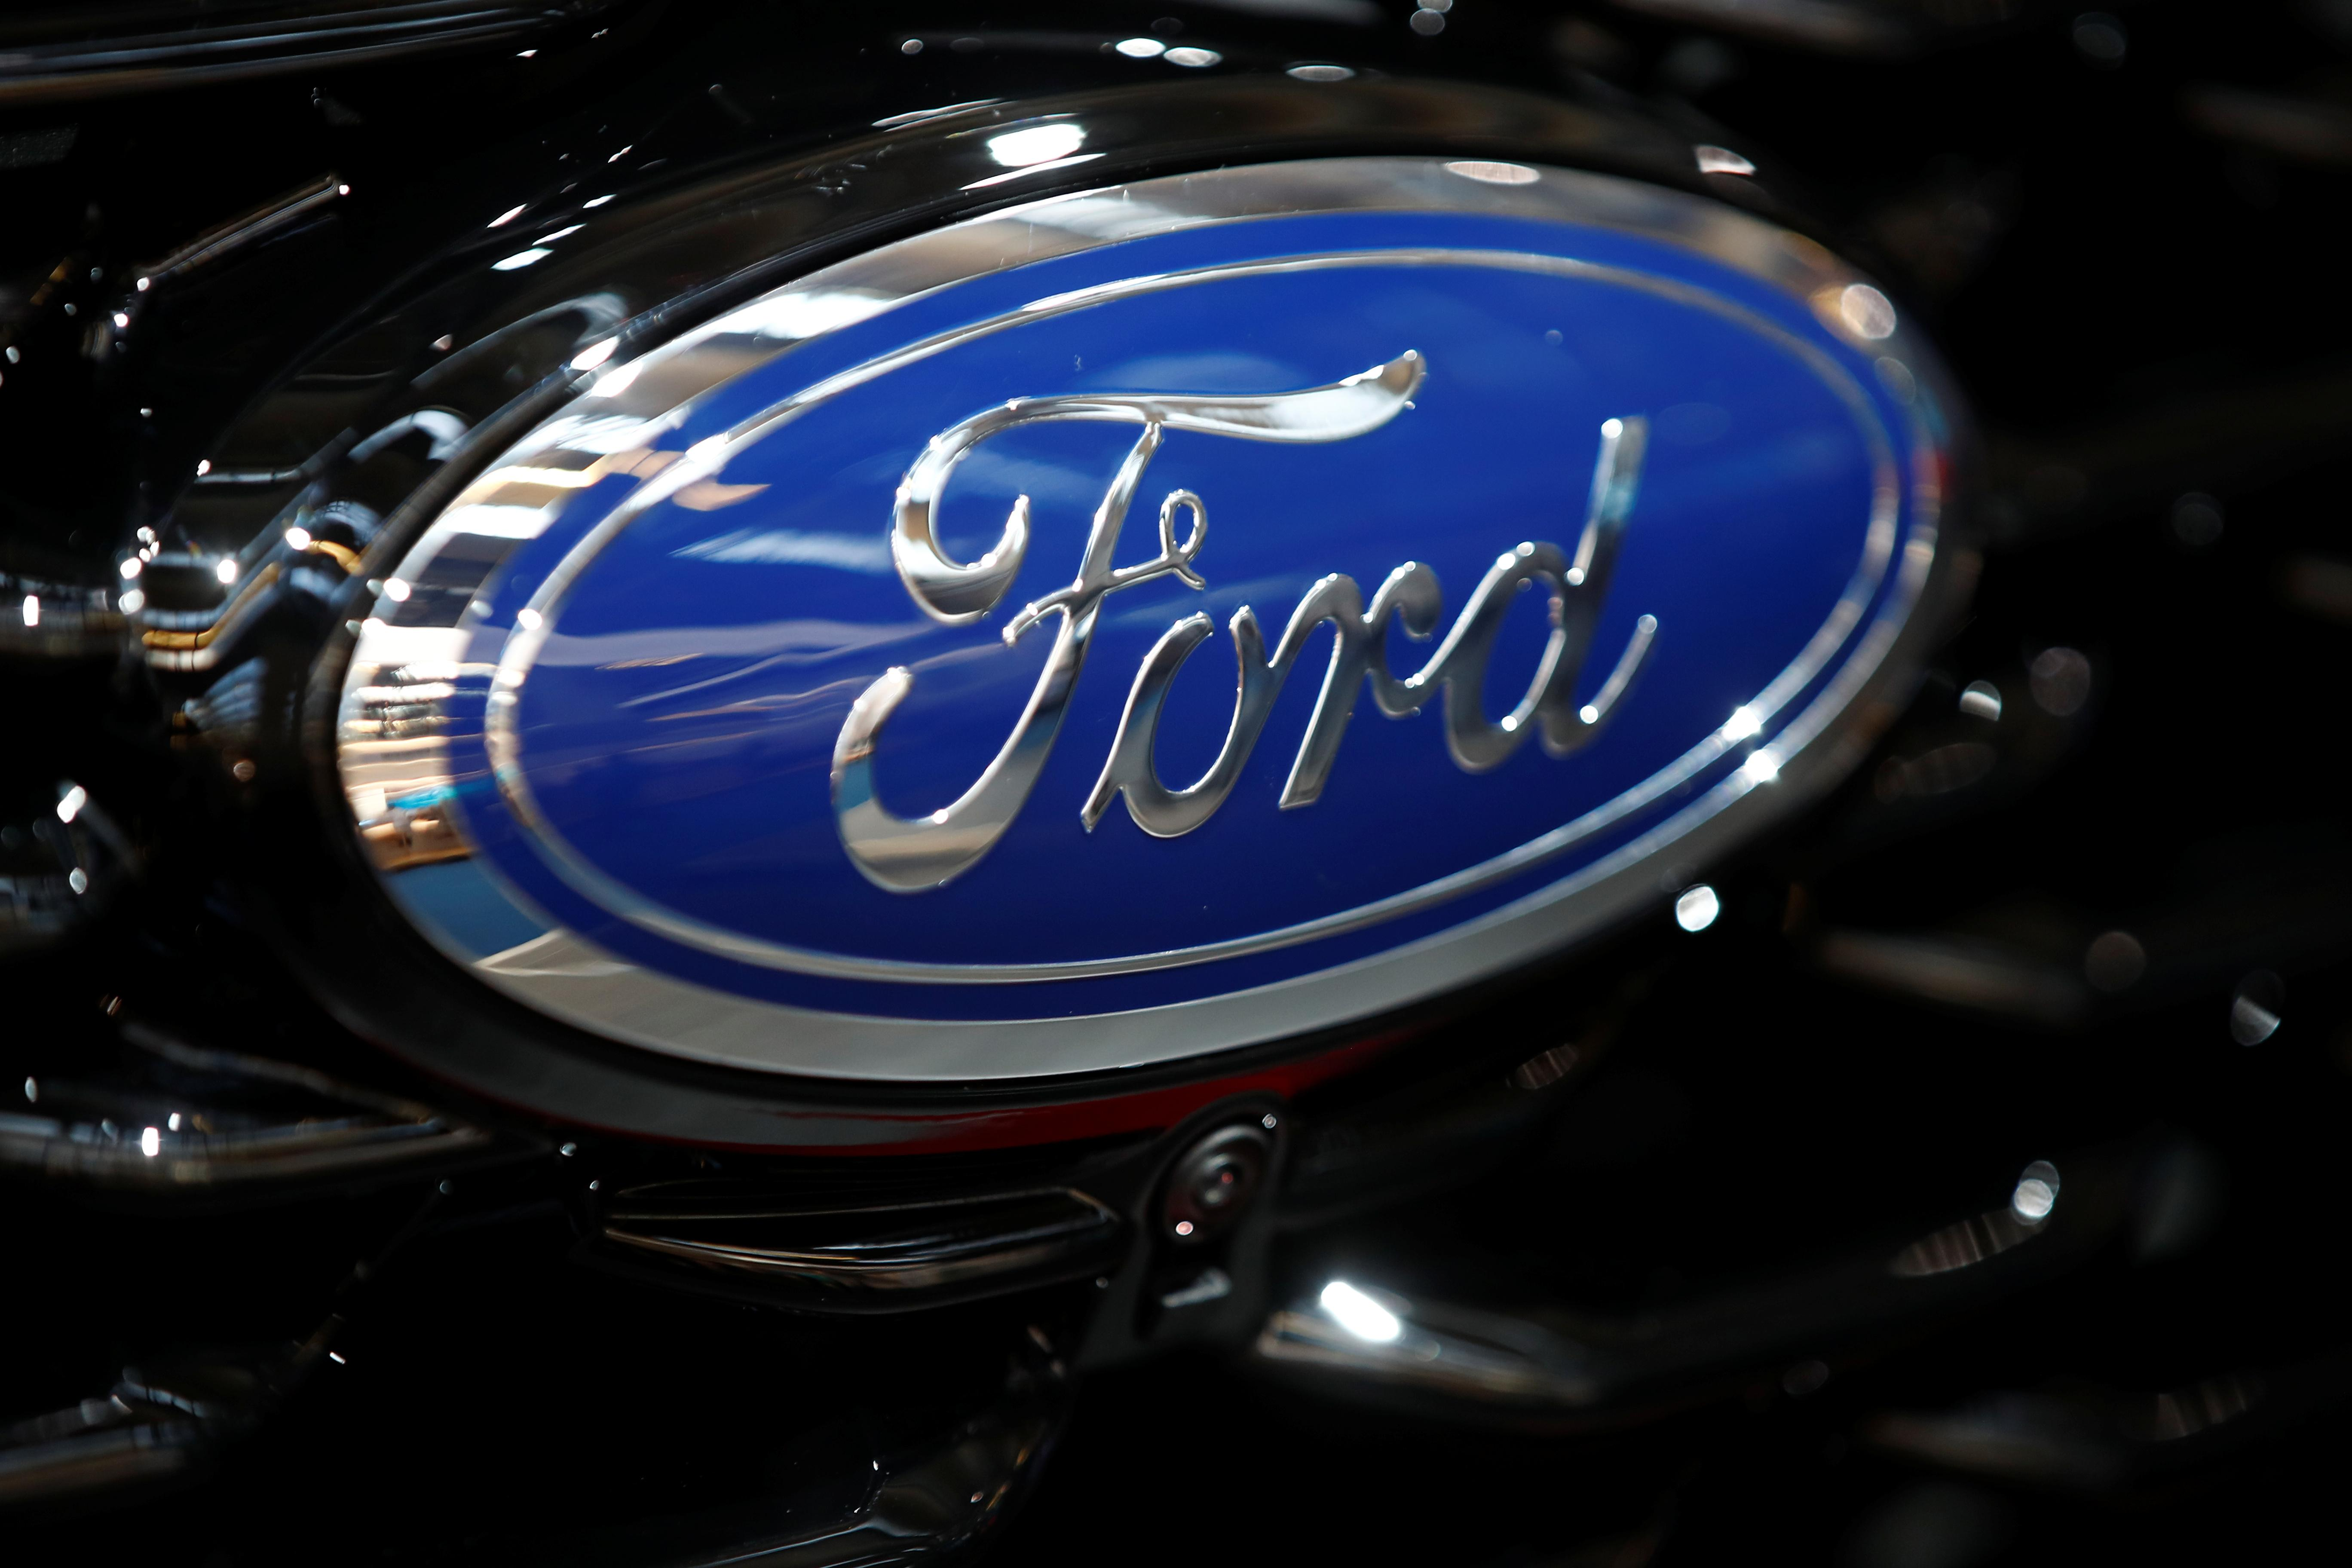 Ford recalls 322,000 cars over battery fire risk: kfz-Betrieb